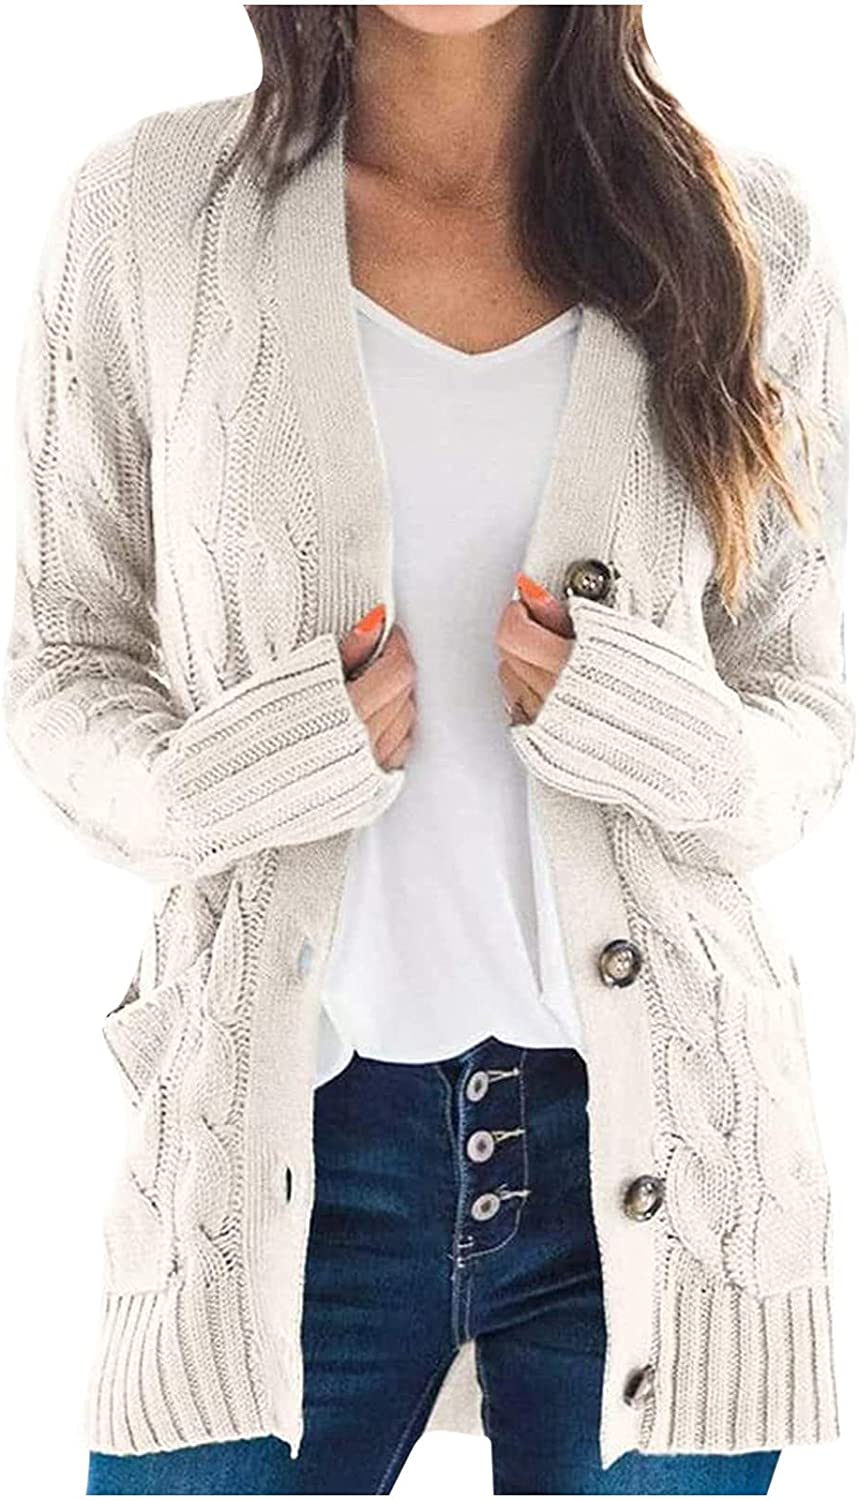 BOXIACEY Cardigan Sweater for Women Solid Button Open Front Knit Slouchy Coats Long Sleeve Outerwear with Pocket